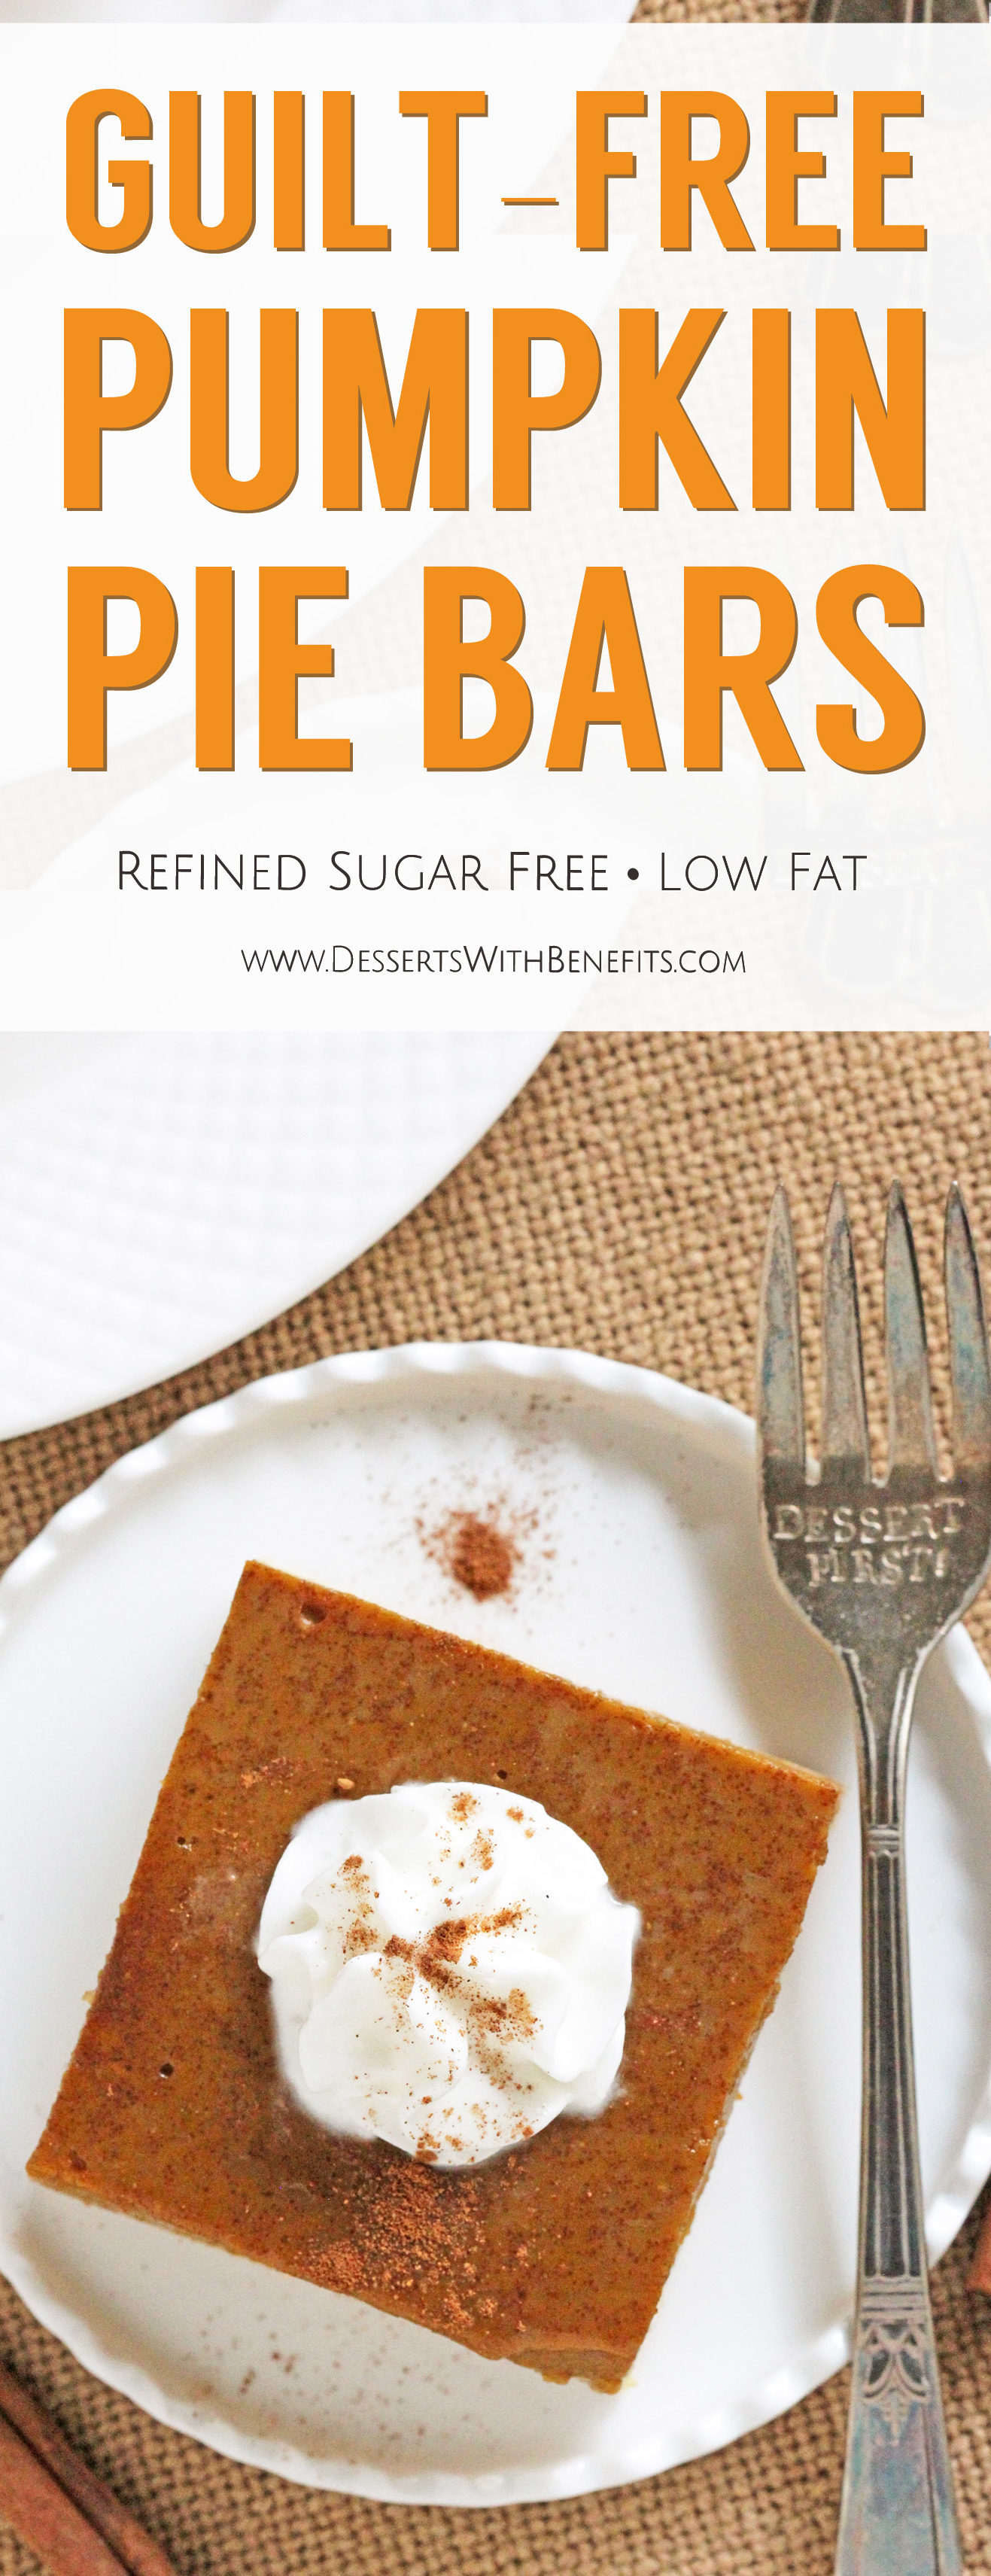 These Guilt Free Pumpkin Pie Bars are just like your classic pumpkin pie -- silky smooth, perfectly sweet, and ultimately satisfying -- but in a perfect square! You'd never know these pie bars are made lower calorie, lower fat, and lower sugar! Healthy Dessert Recipes at the Desserts With Benefits Blog (www.DessertsWithBenefits.com)